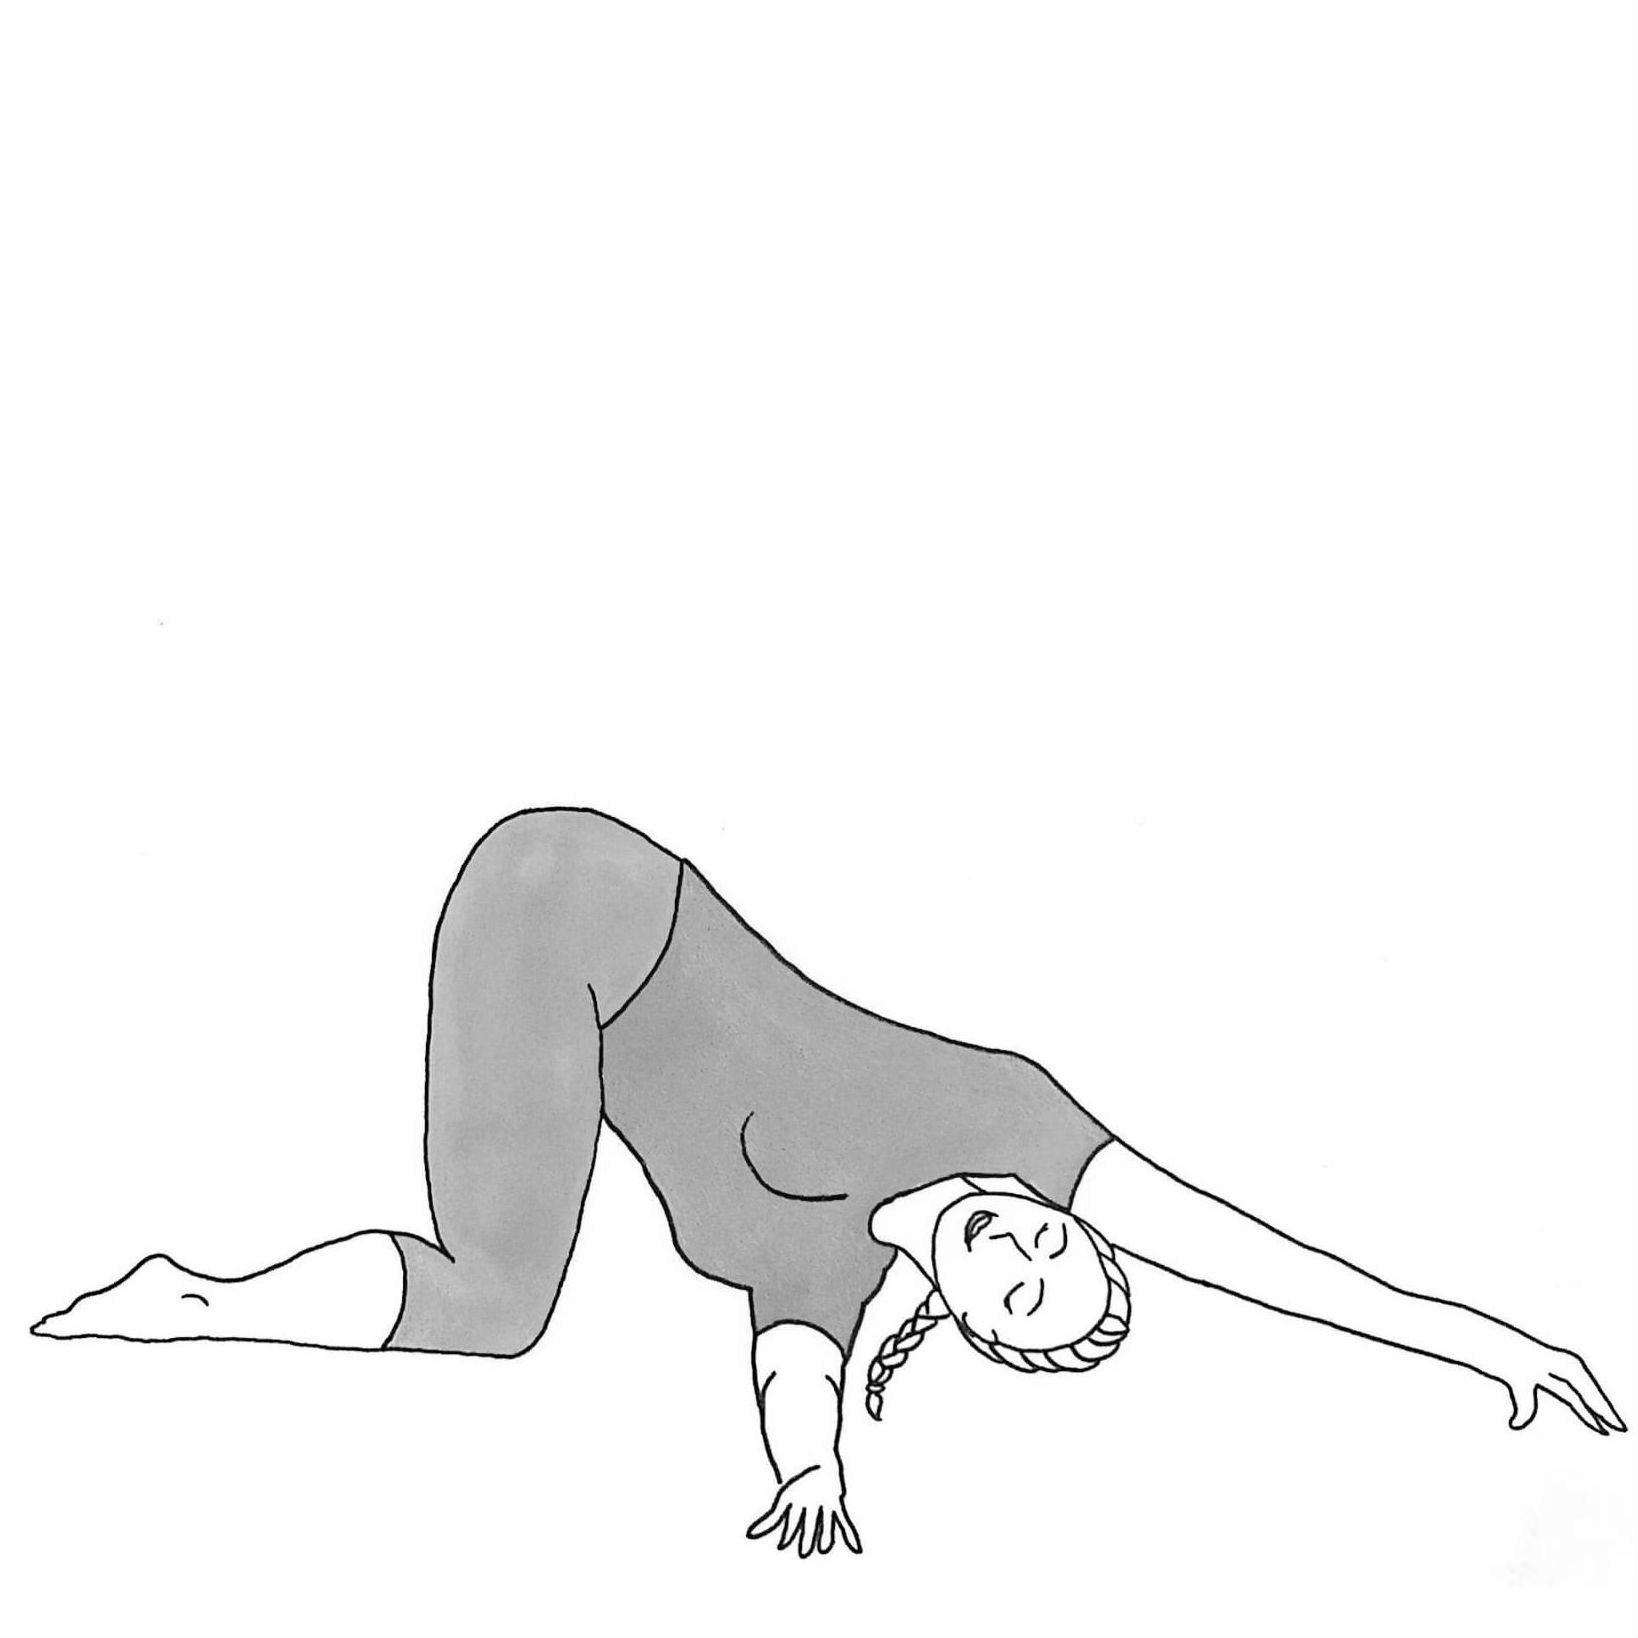 Thread the Needle - Parsva Balasana